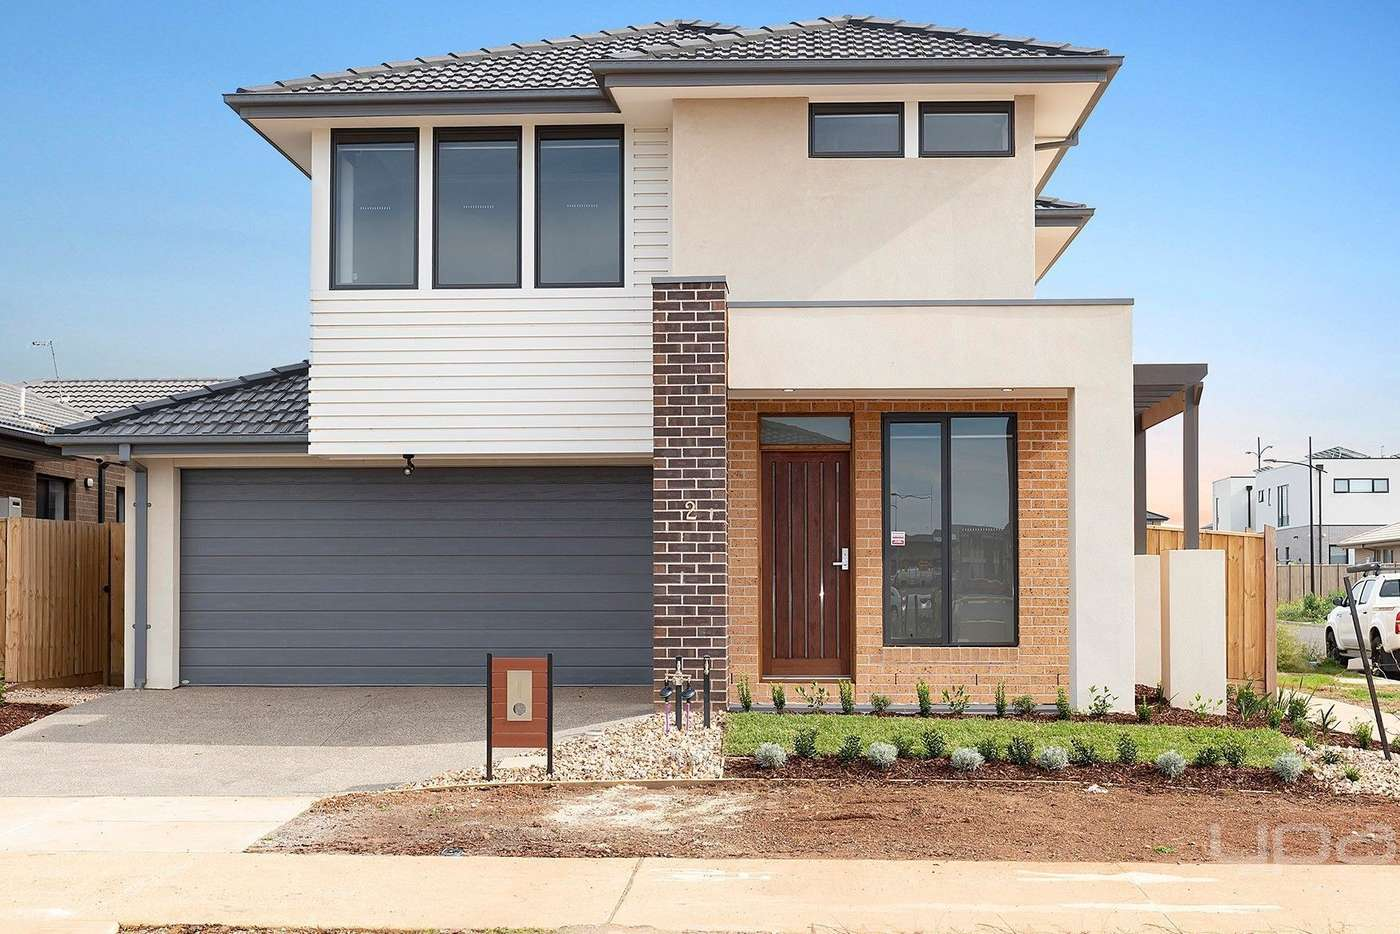 Main view of Homely house listing, 2 Loretta Way, Aintree VIC 3336